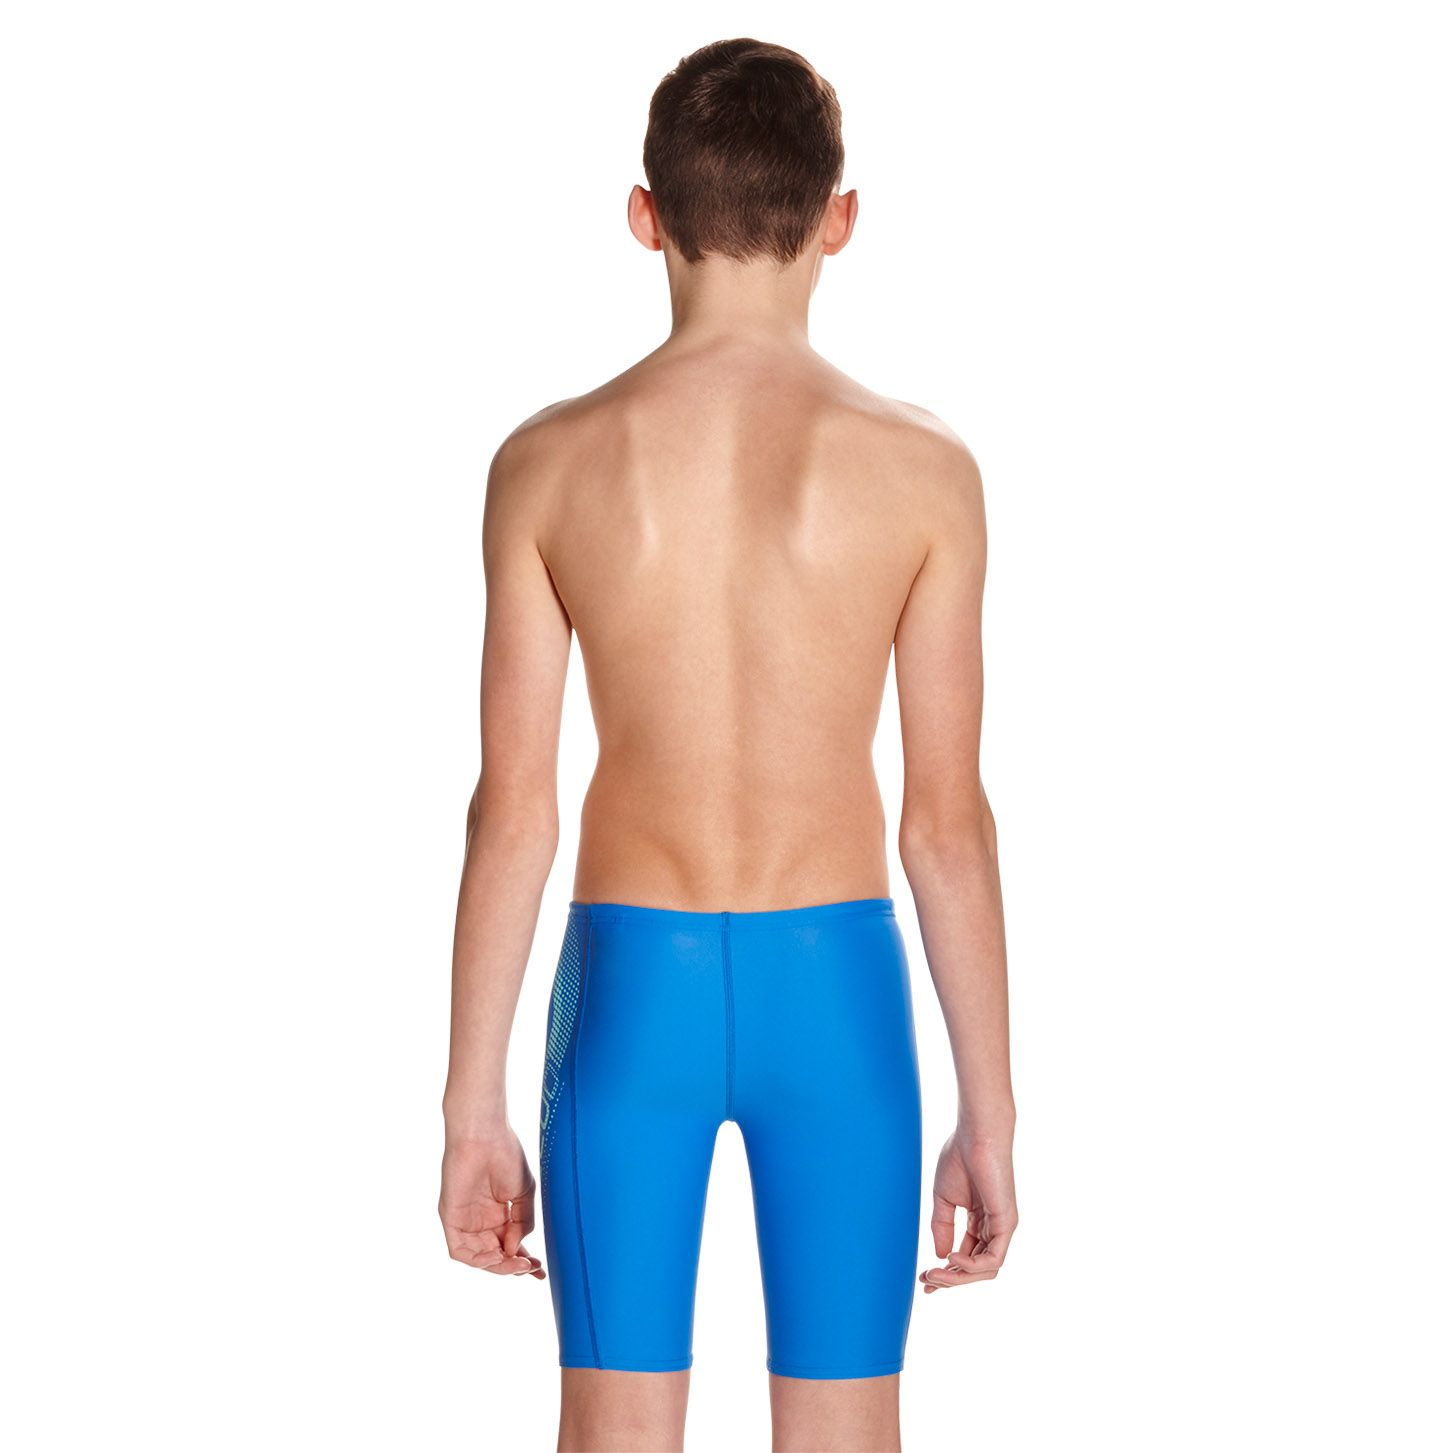 Boys swimming jammers | tracker blockers jammers wisconsin